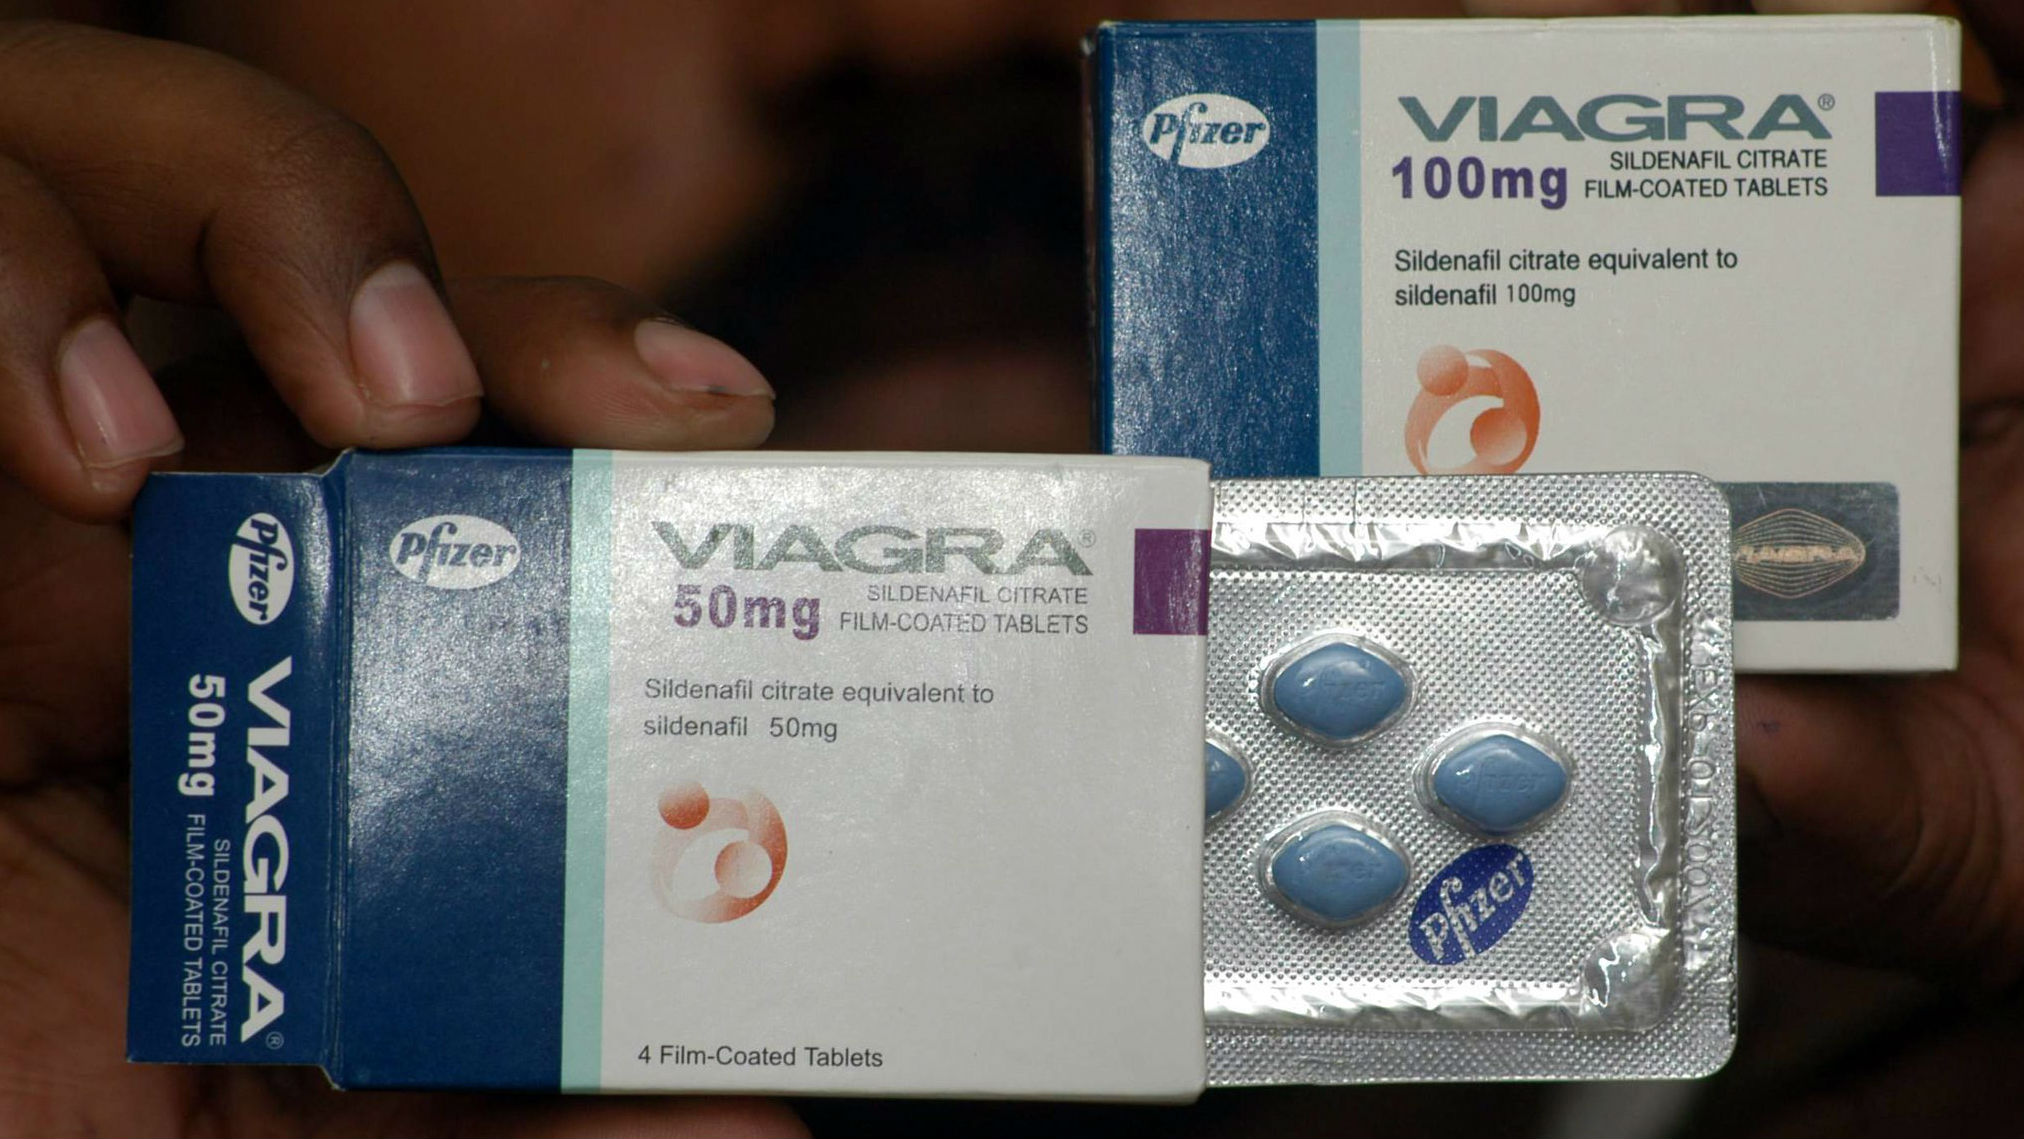 A hand holding a box of Viagra with some of the wrapped pills exposed.